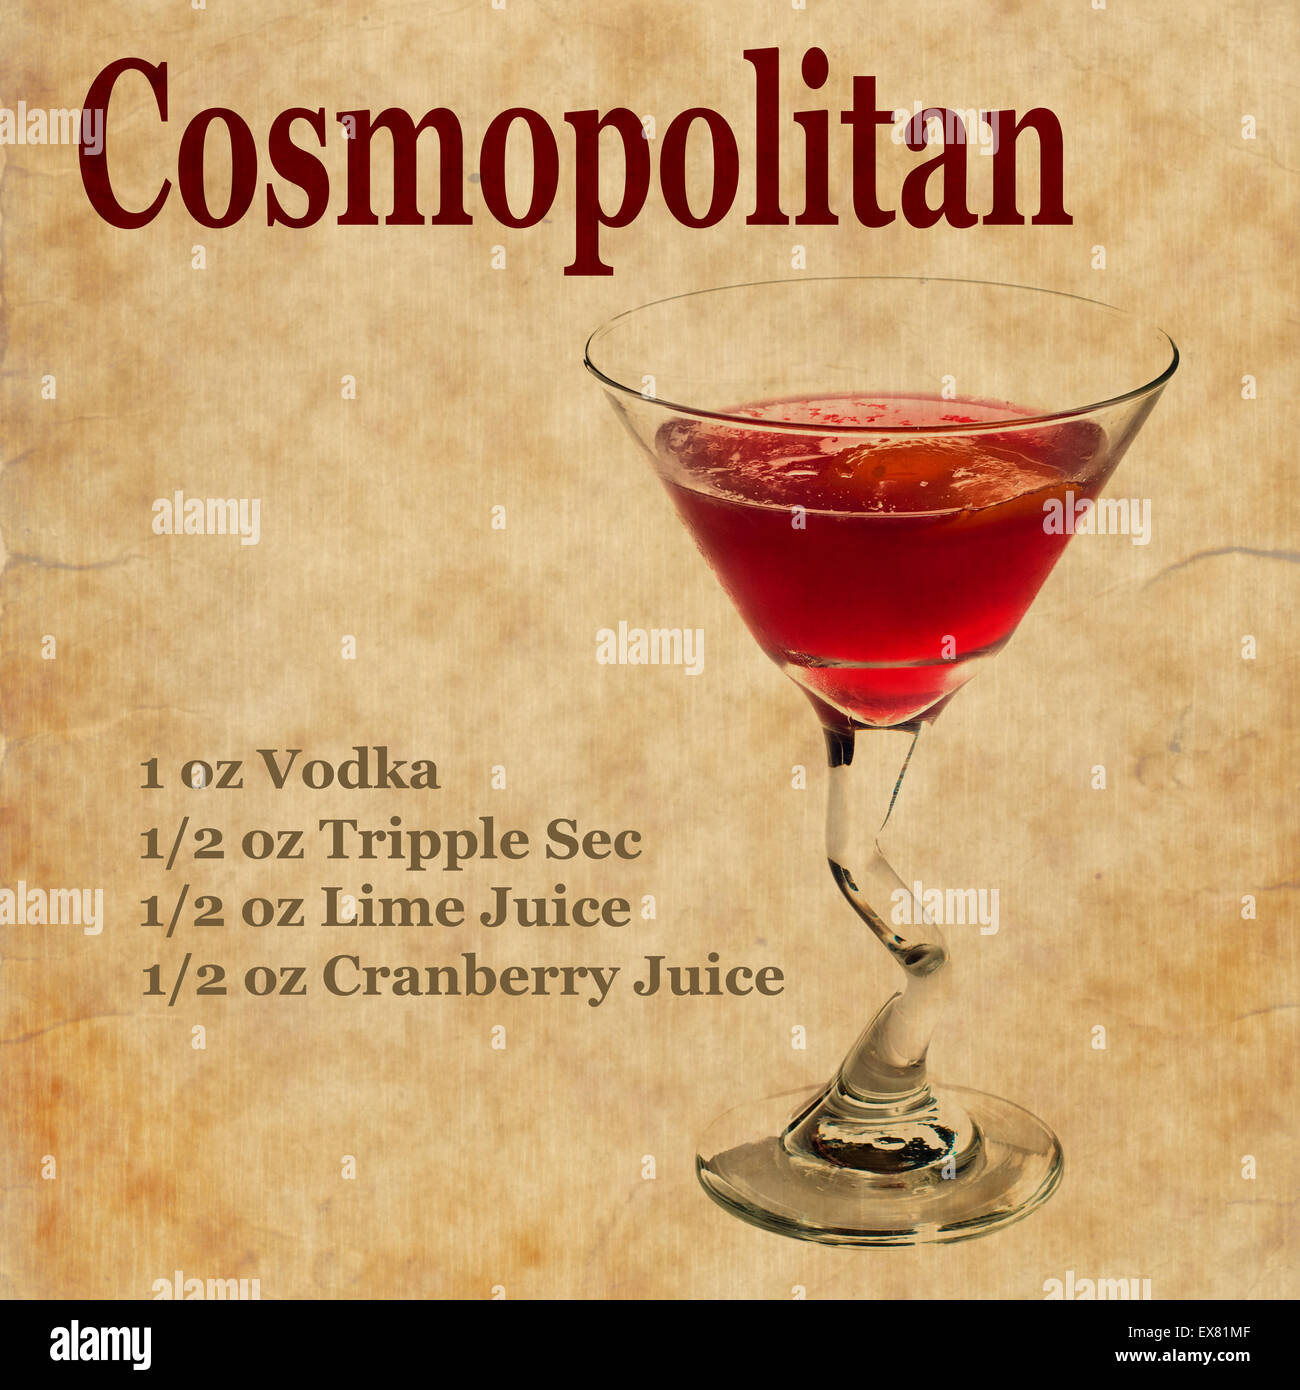 Old vintage or grunge recipe notebook with cosmopolitan for Cosmopolitan cocktail